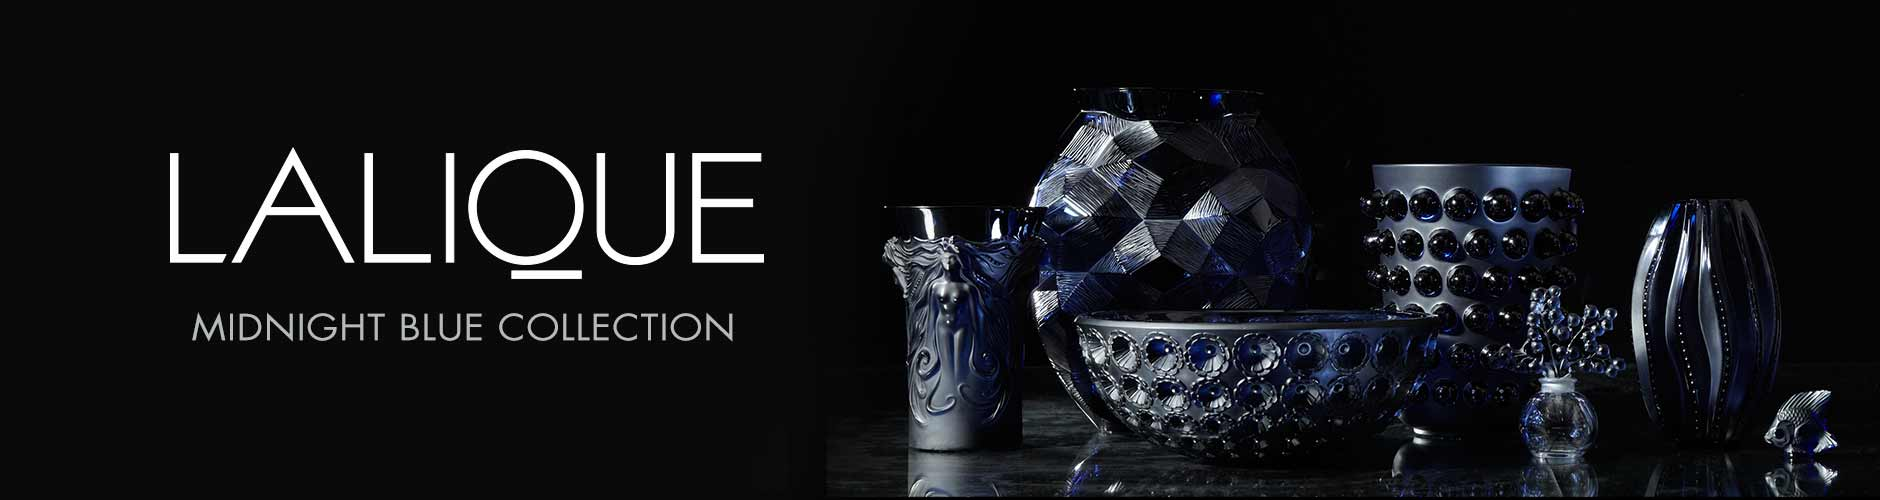 Lalique: Midnight Blue Collection